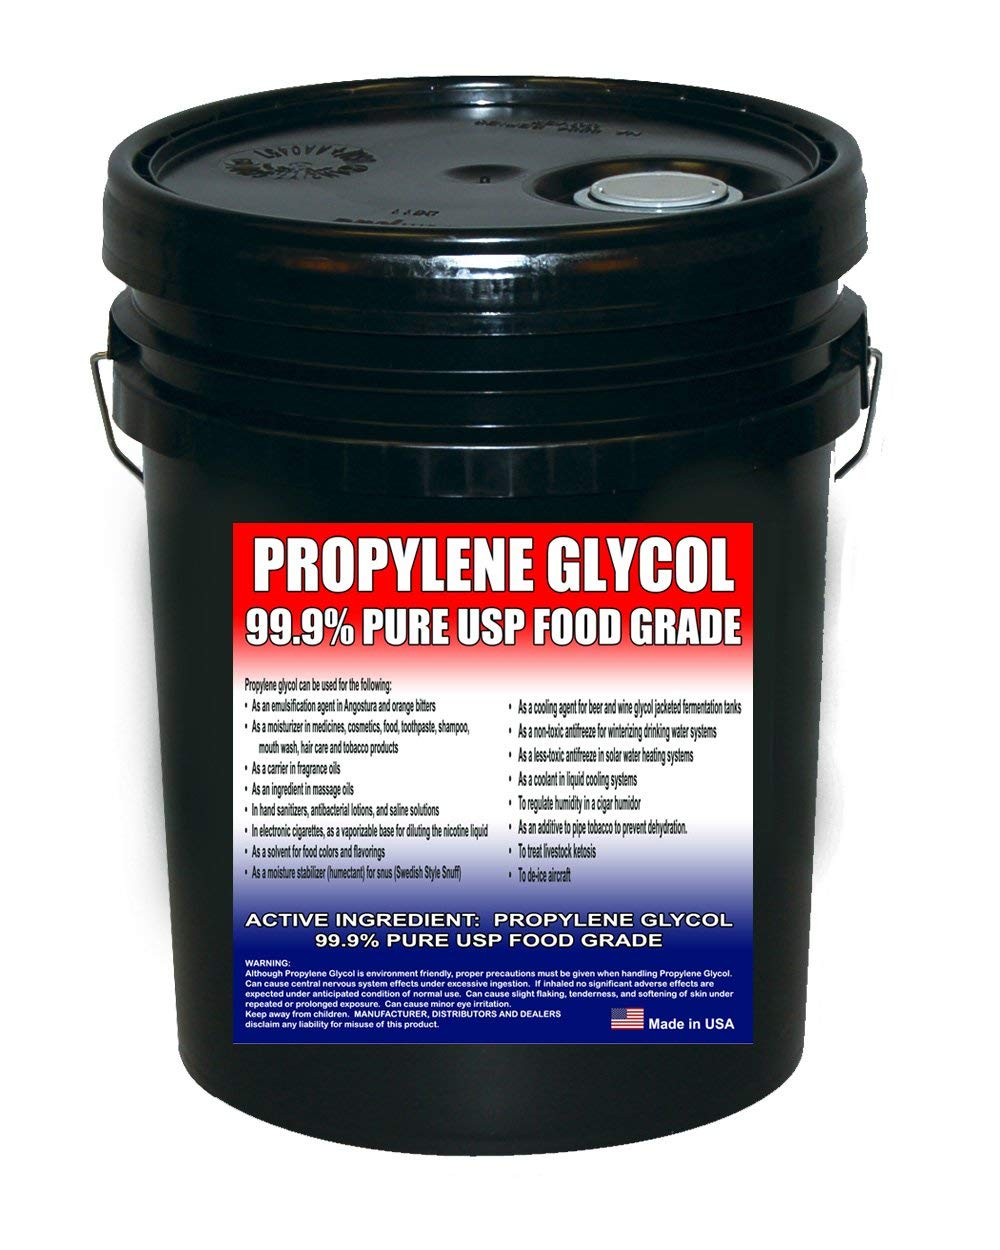 Propylene Glycol USP Kosher Certified 100% Pure Food & Pharmaceutical Grade - Highest Possible Purity - 43.1 lbs. nt. wt. in a 5 Gallon Pail in Safety Sealed HDPE Container with Resealable Cap…